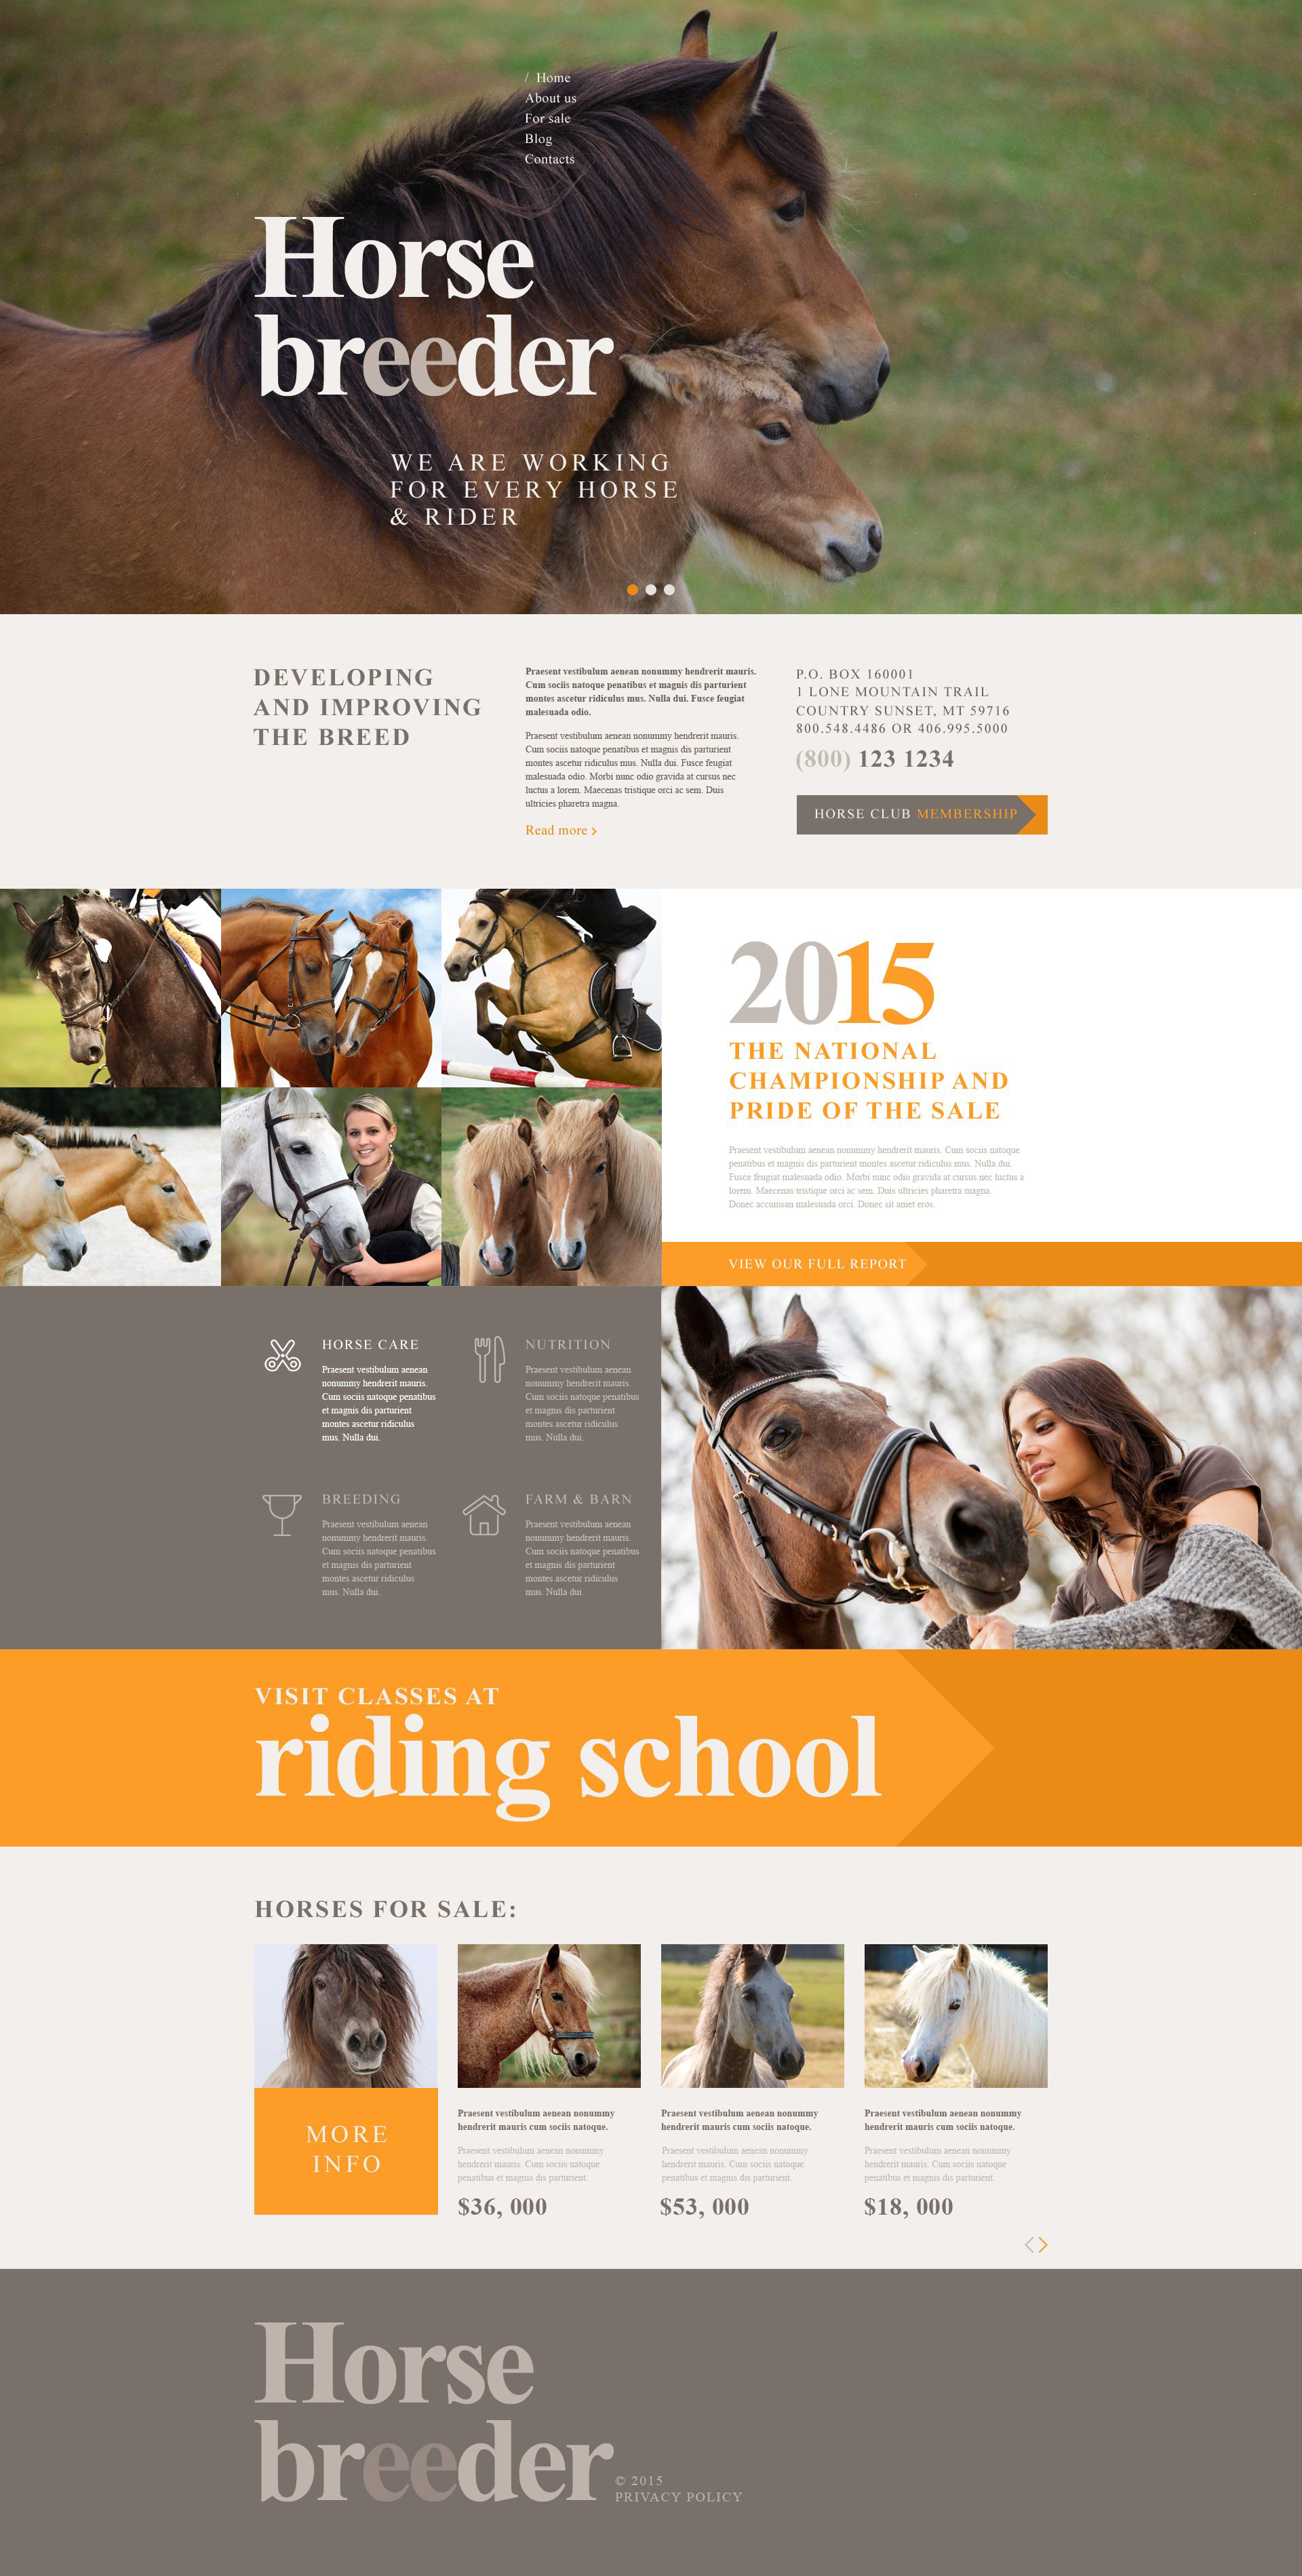 The Horse Breeder Club WordPress Design 53762, one of the best WordPress themes of its kind (animals & pets, most popular), also known as horse breeder club WordPress template, sport WordPress template, racing club WordPress template, members WordPress template, flat WordPress template, obstacle WordPress template, hippodrome WordPress template, racecourse WordPress template, championship WordPress template, champions and related with horse breeder club, sport, racing club, members, flat, obstacle, hippodrome, racecourse, championship, champions, etc.